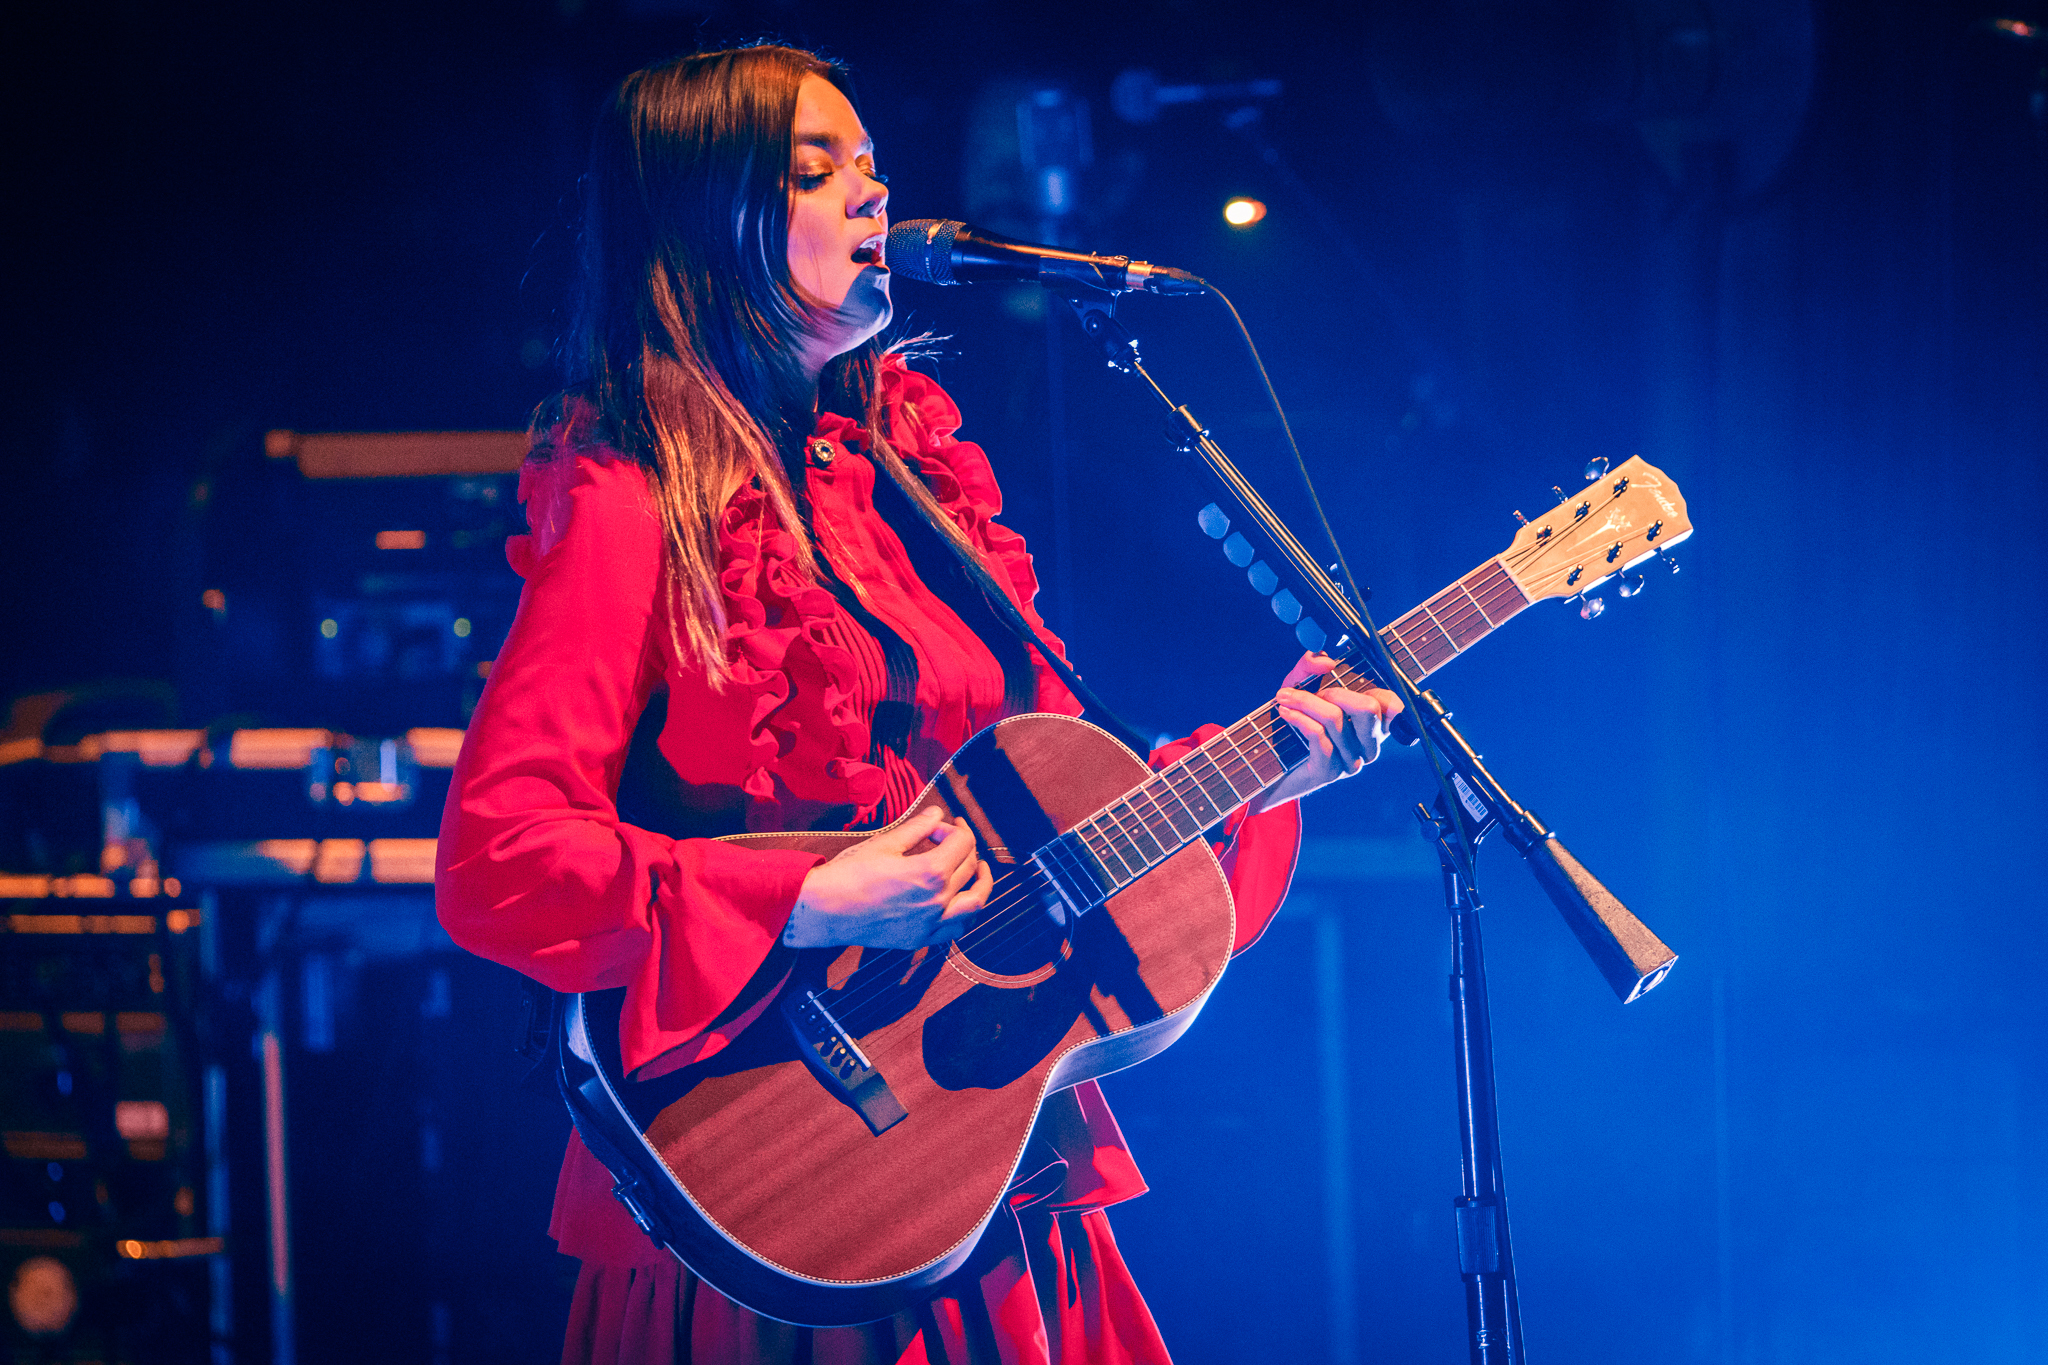 First Aid Kit performing at the Lincoln Theatre in Washington, DC - 2/9/2018 (photo by Matt Condon / @arcane93)